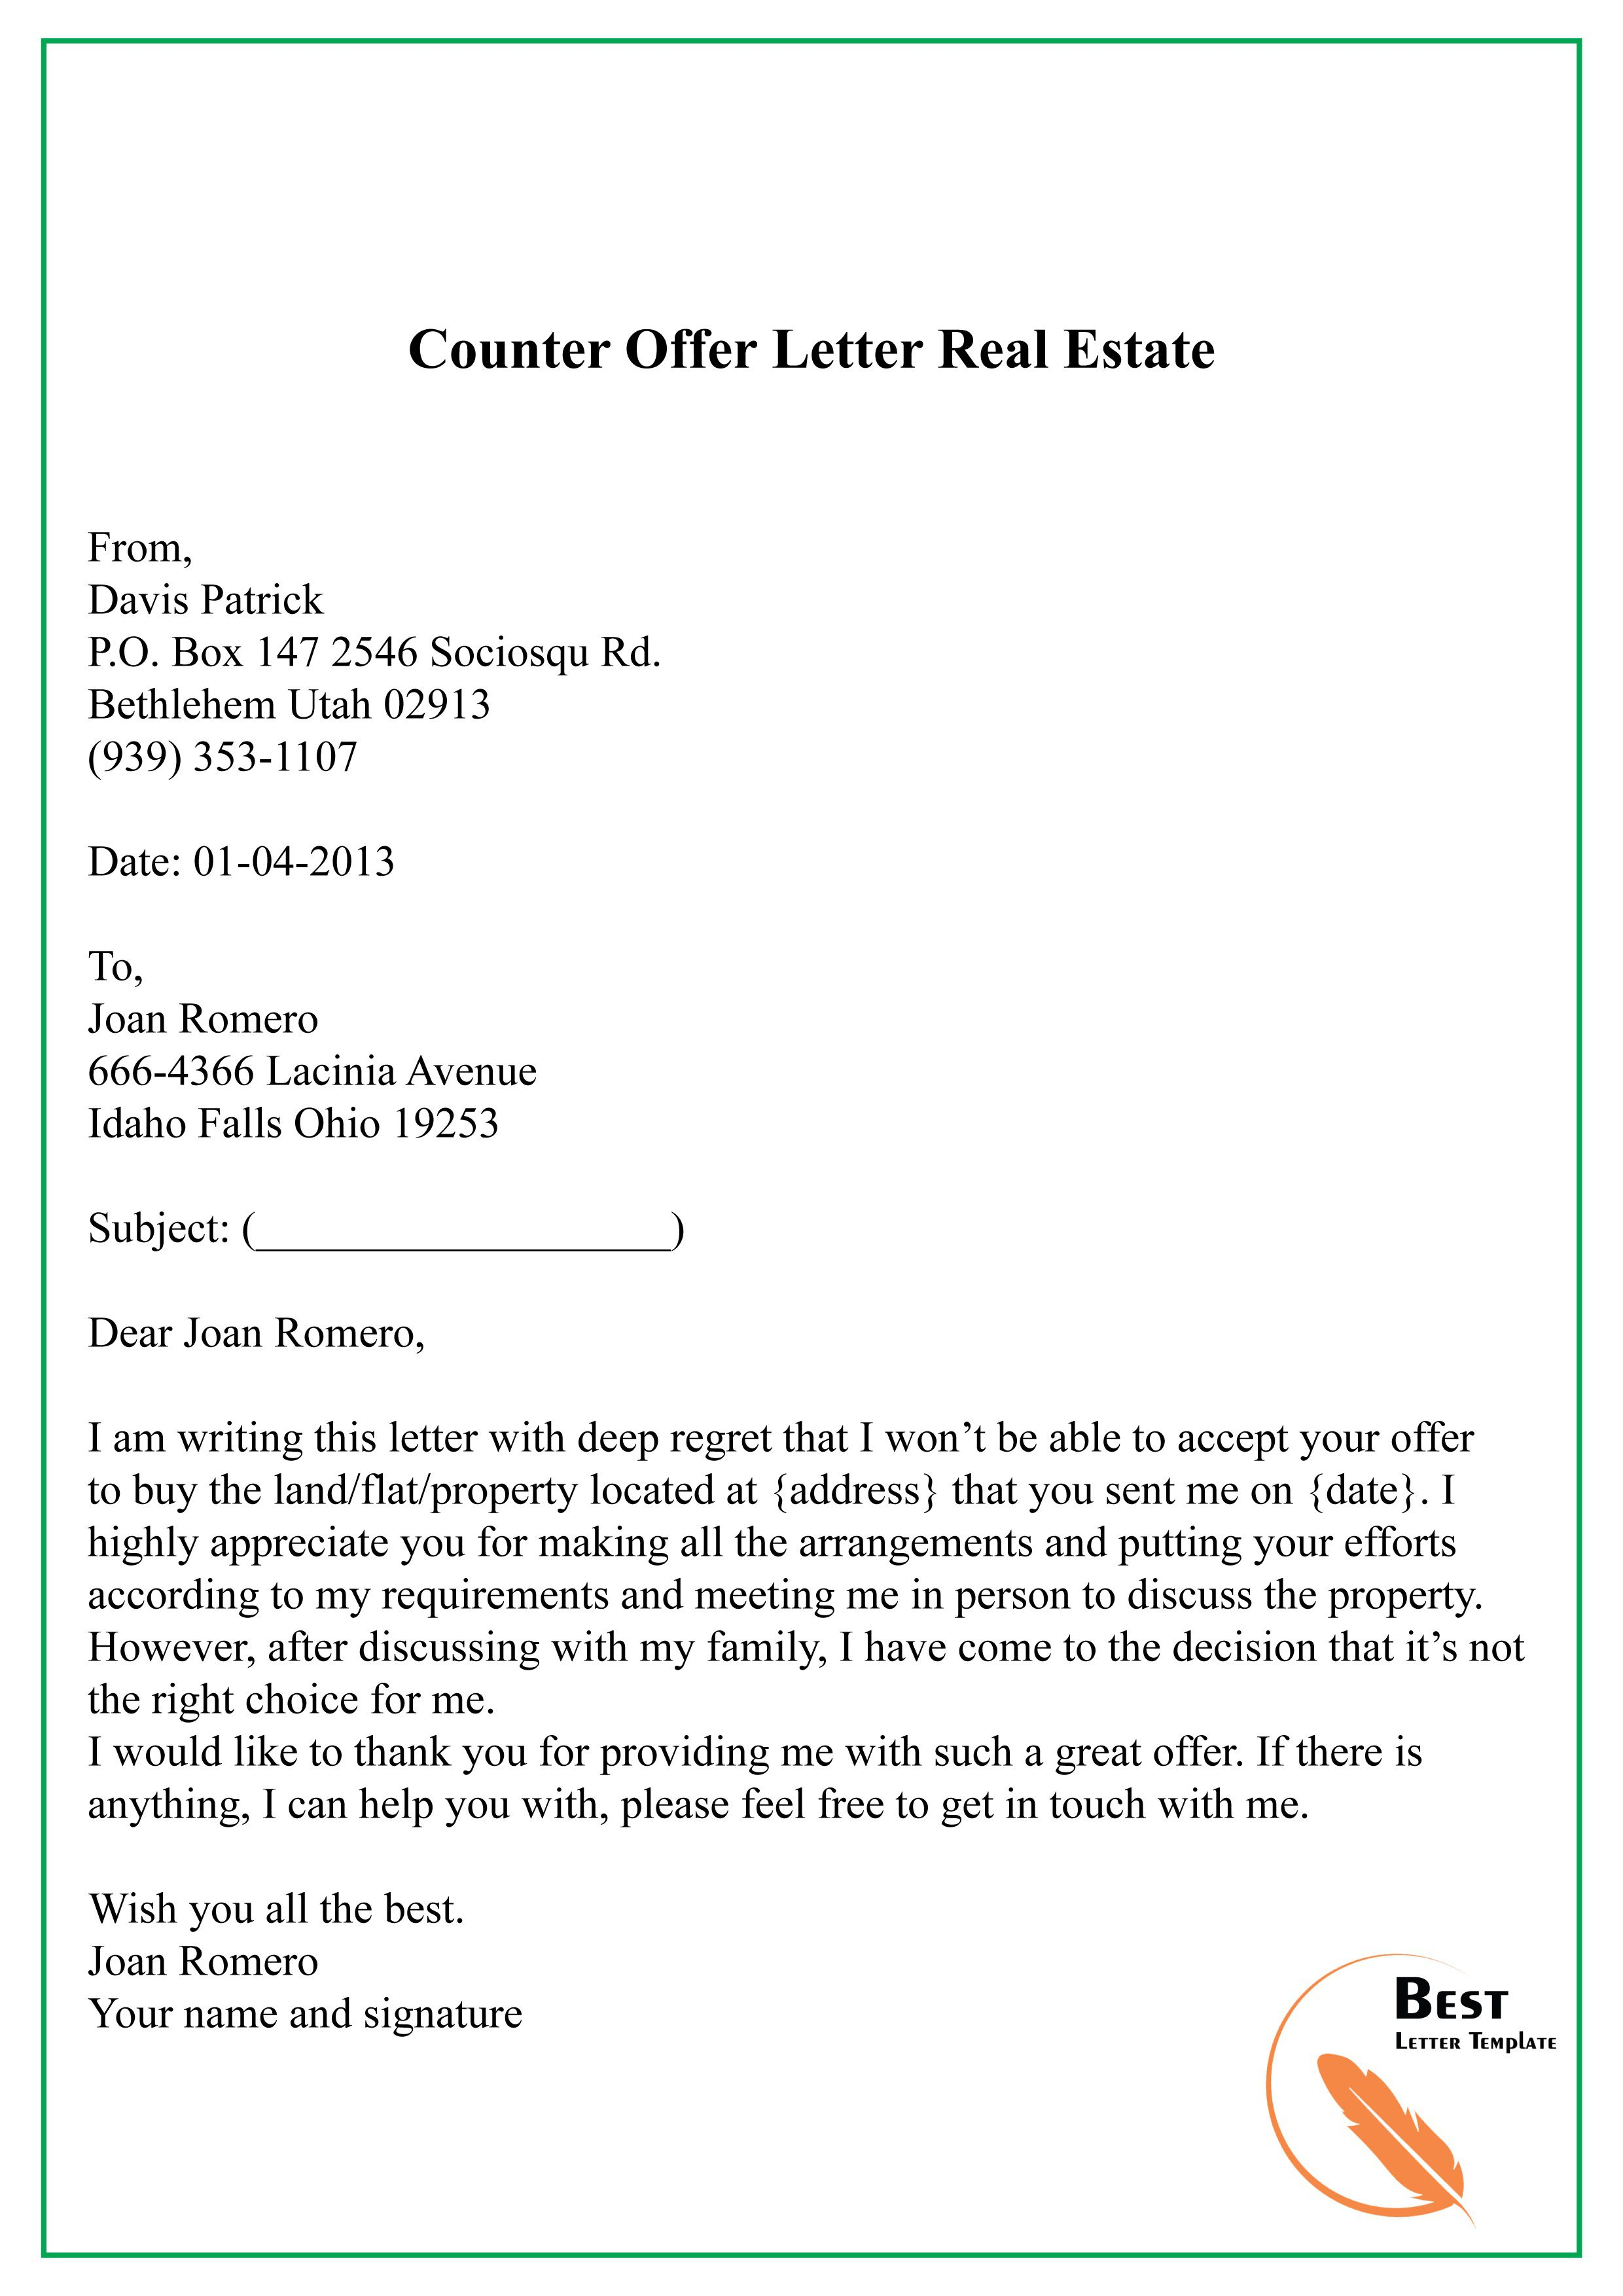 Real Estate Counter Offer Letter from www.addictionary.org